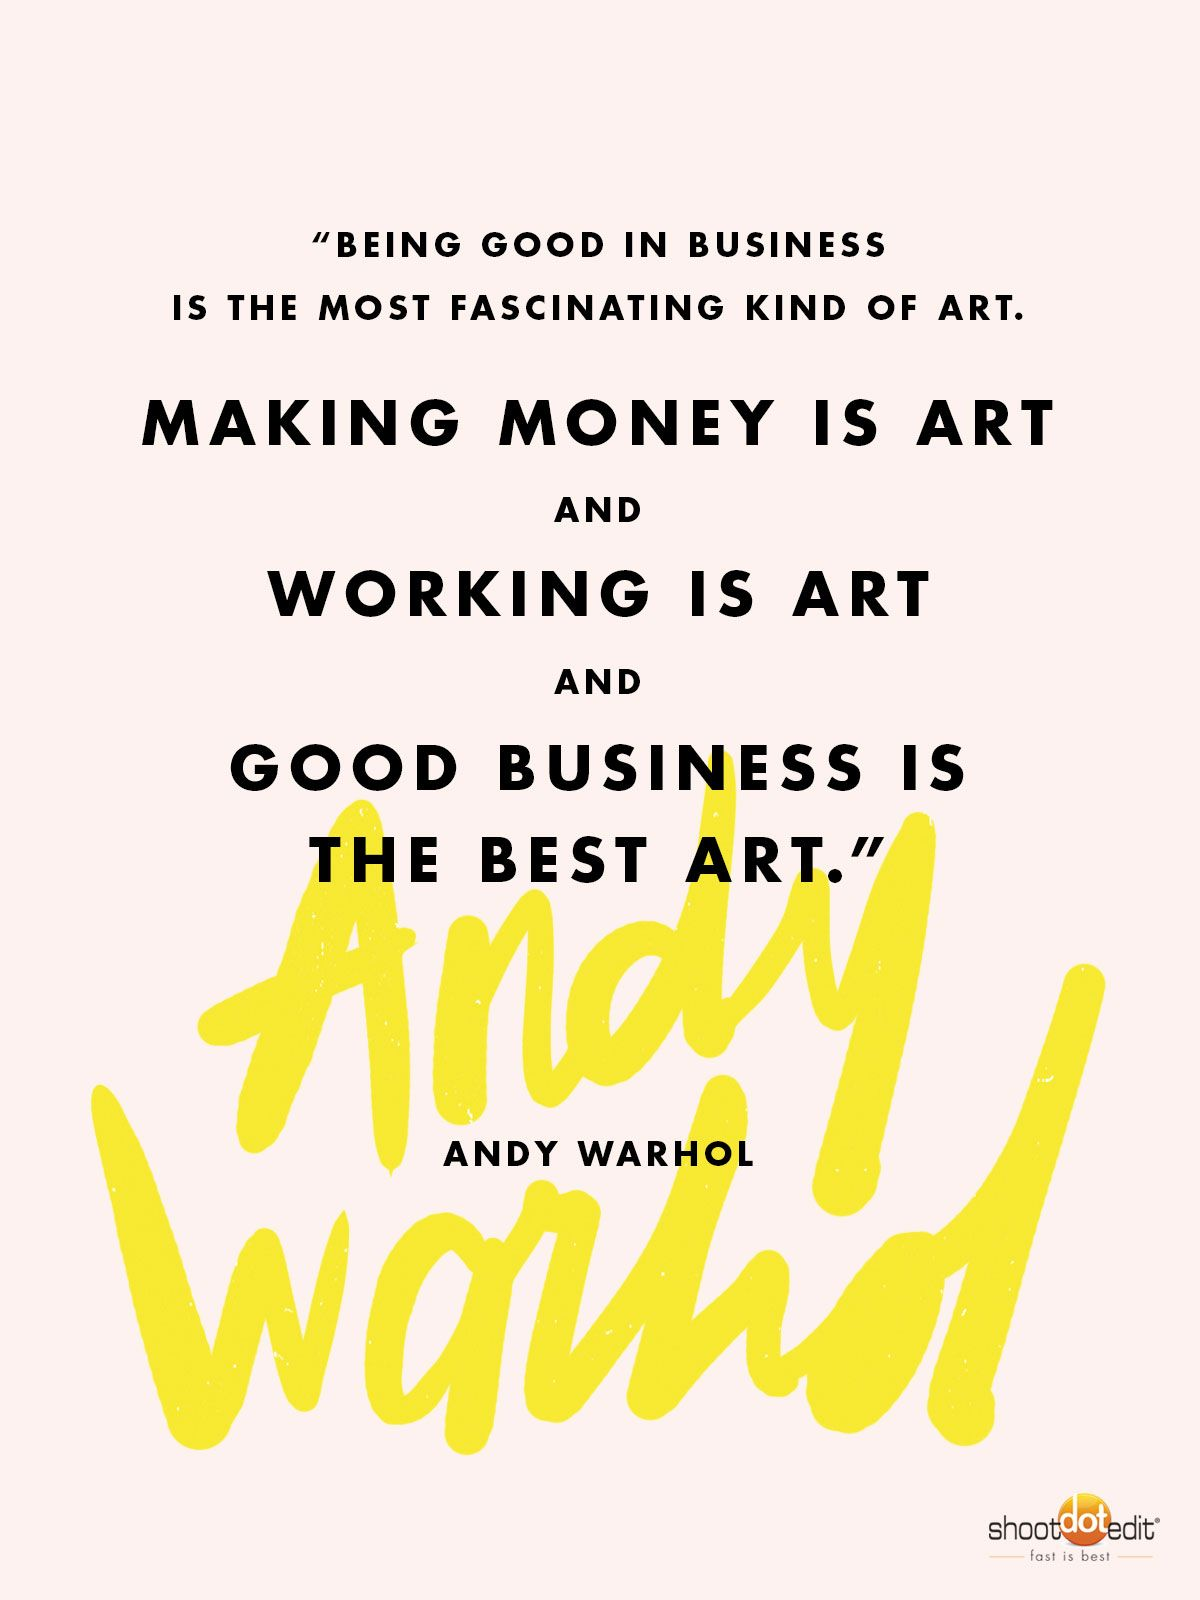 Andy Warhol Quotes Meet A Business Savvy Artist Every Photographer Should Know